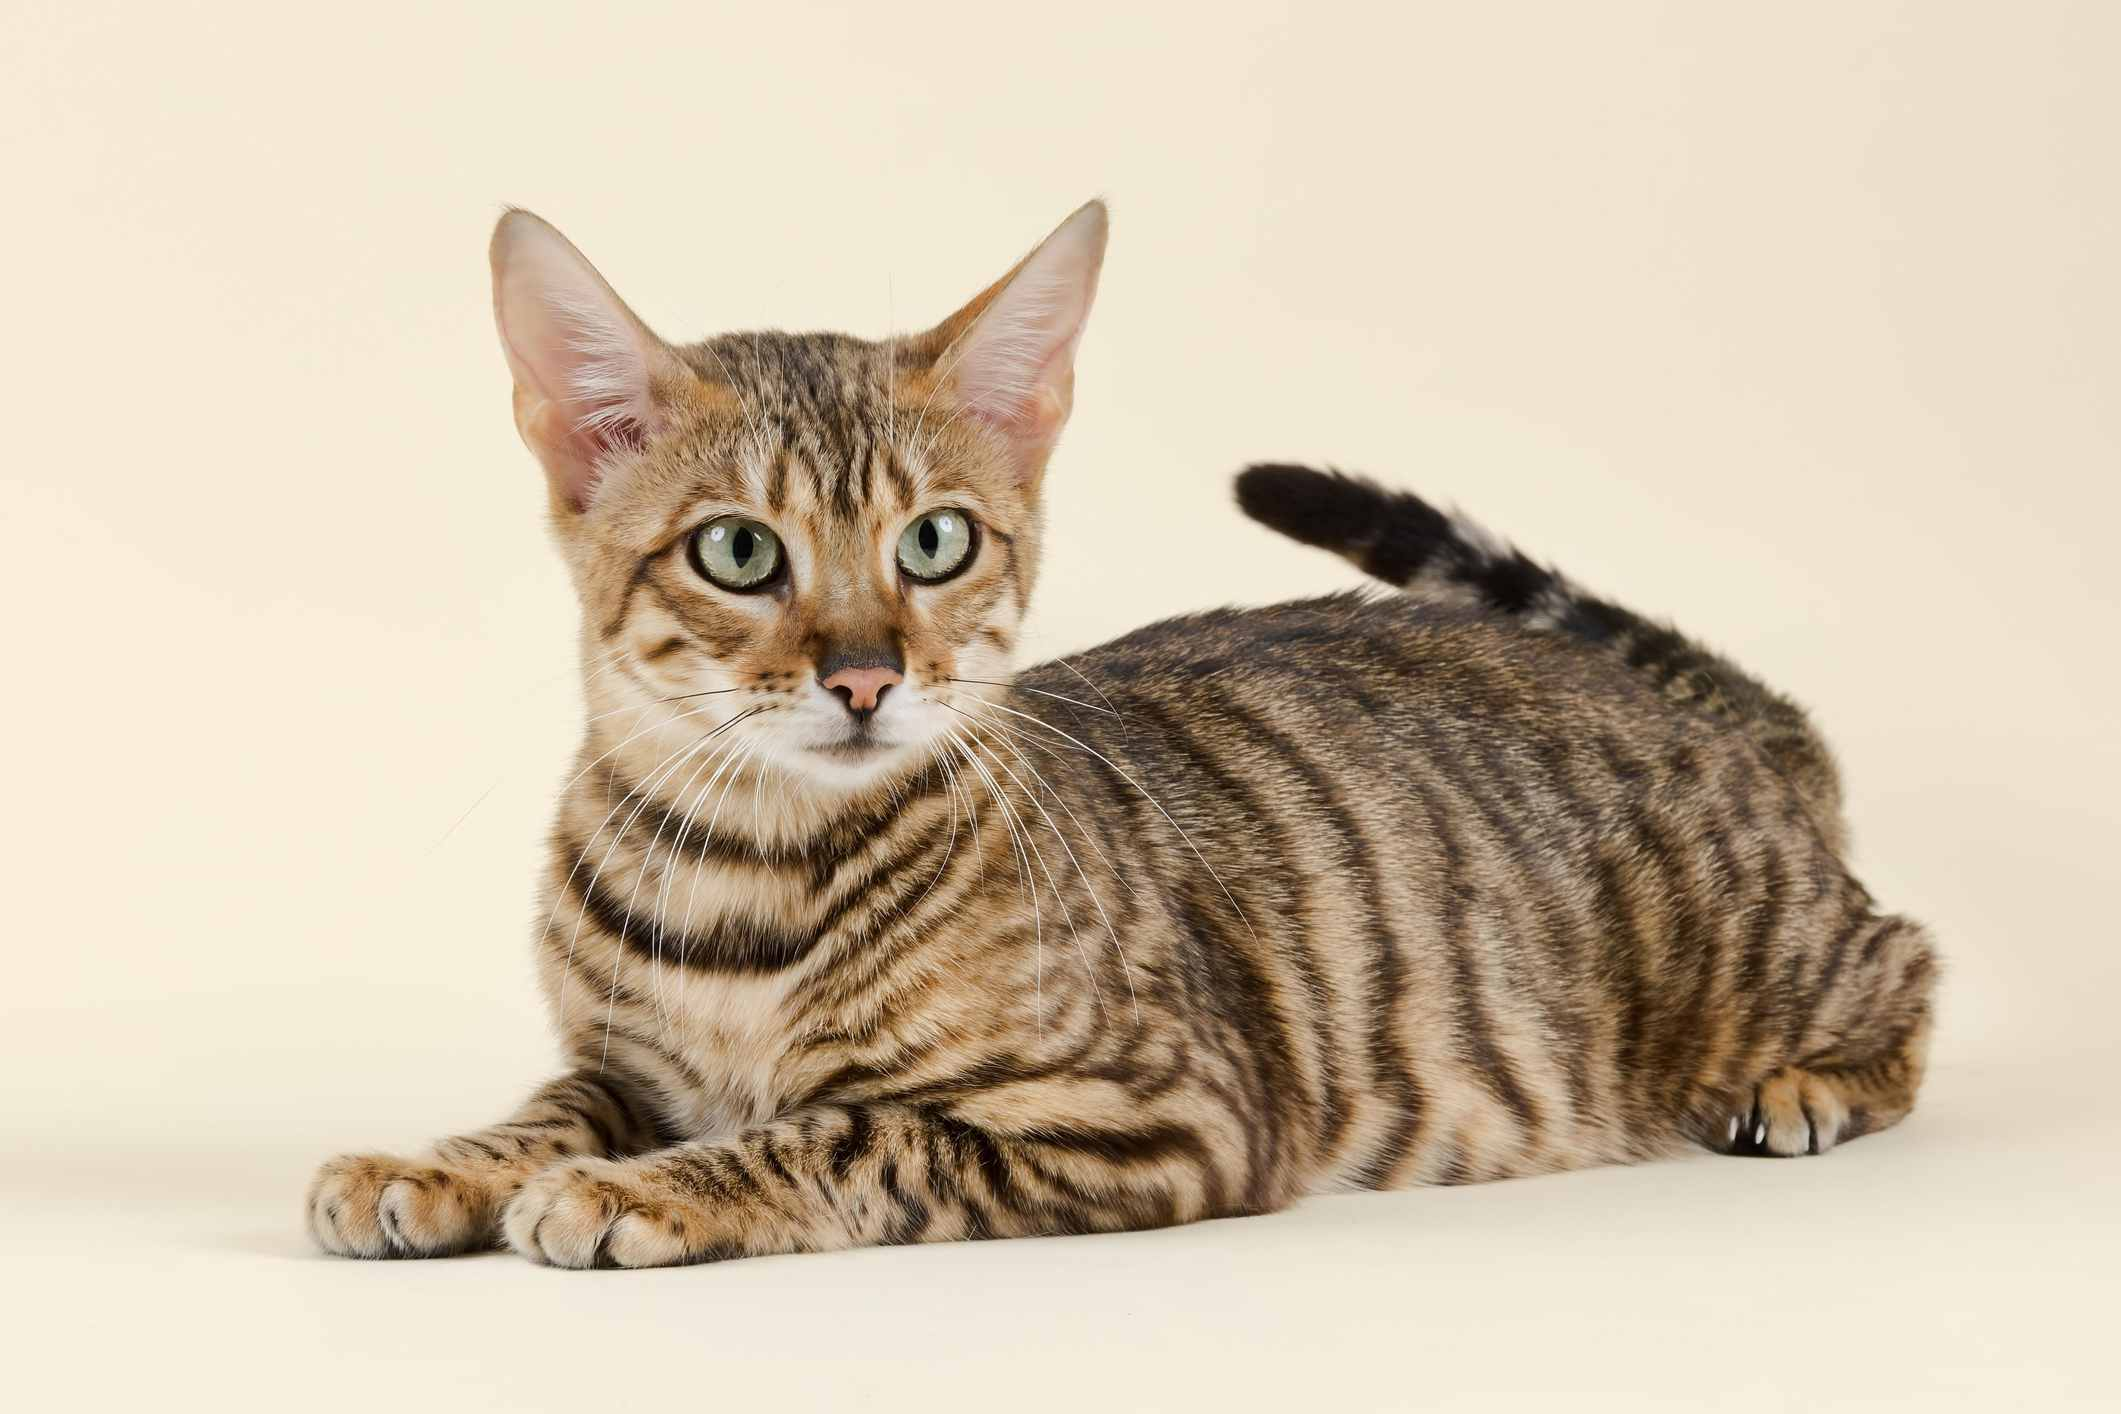 Toyger cat against a yellow background